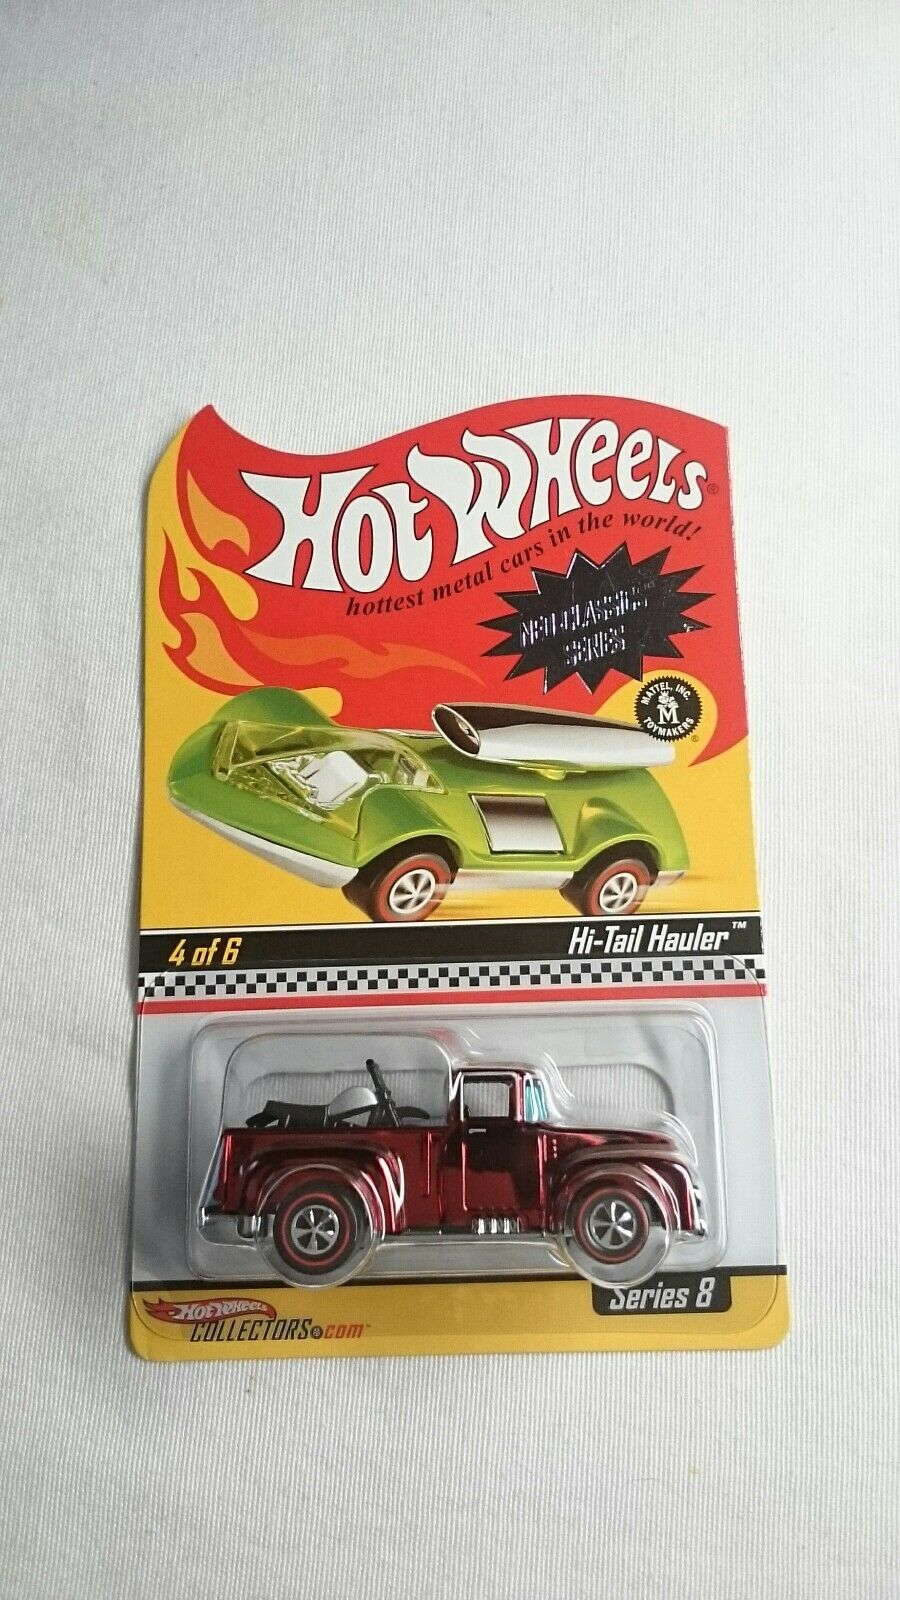 HOT WHEELS NEO CLASSICS HI TAIL HAULER 2764 6500 DIE DIE DIE CAST MINT 1 64 RLC 9b4754